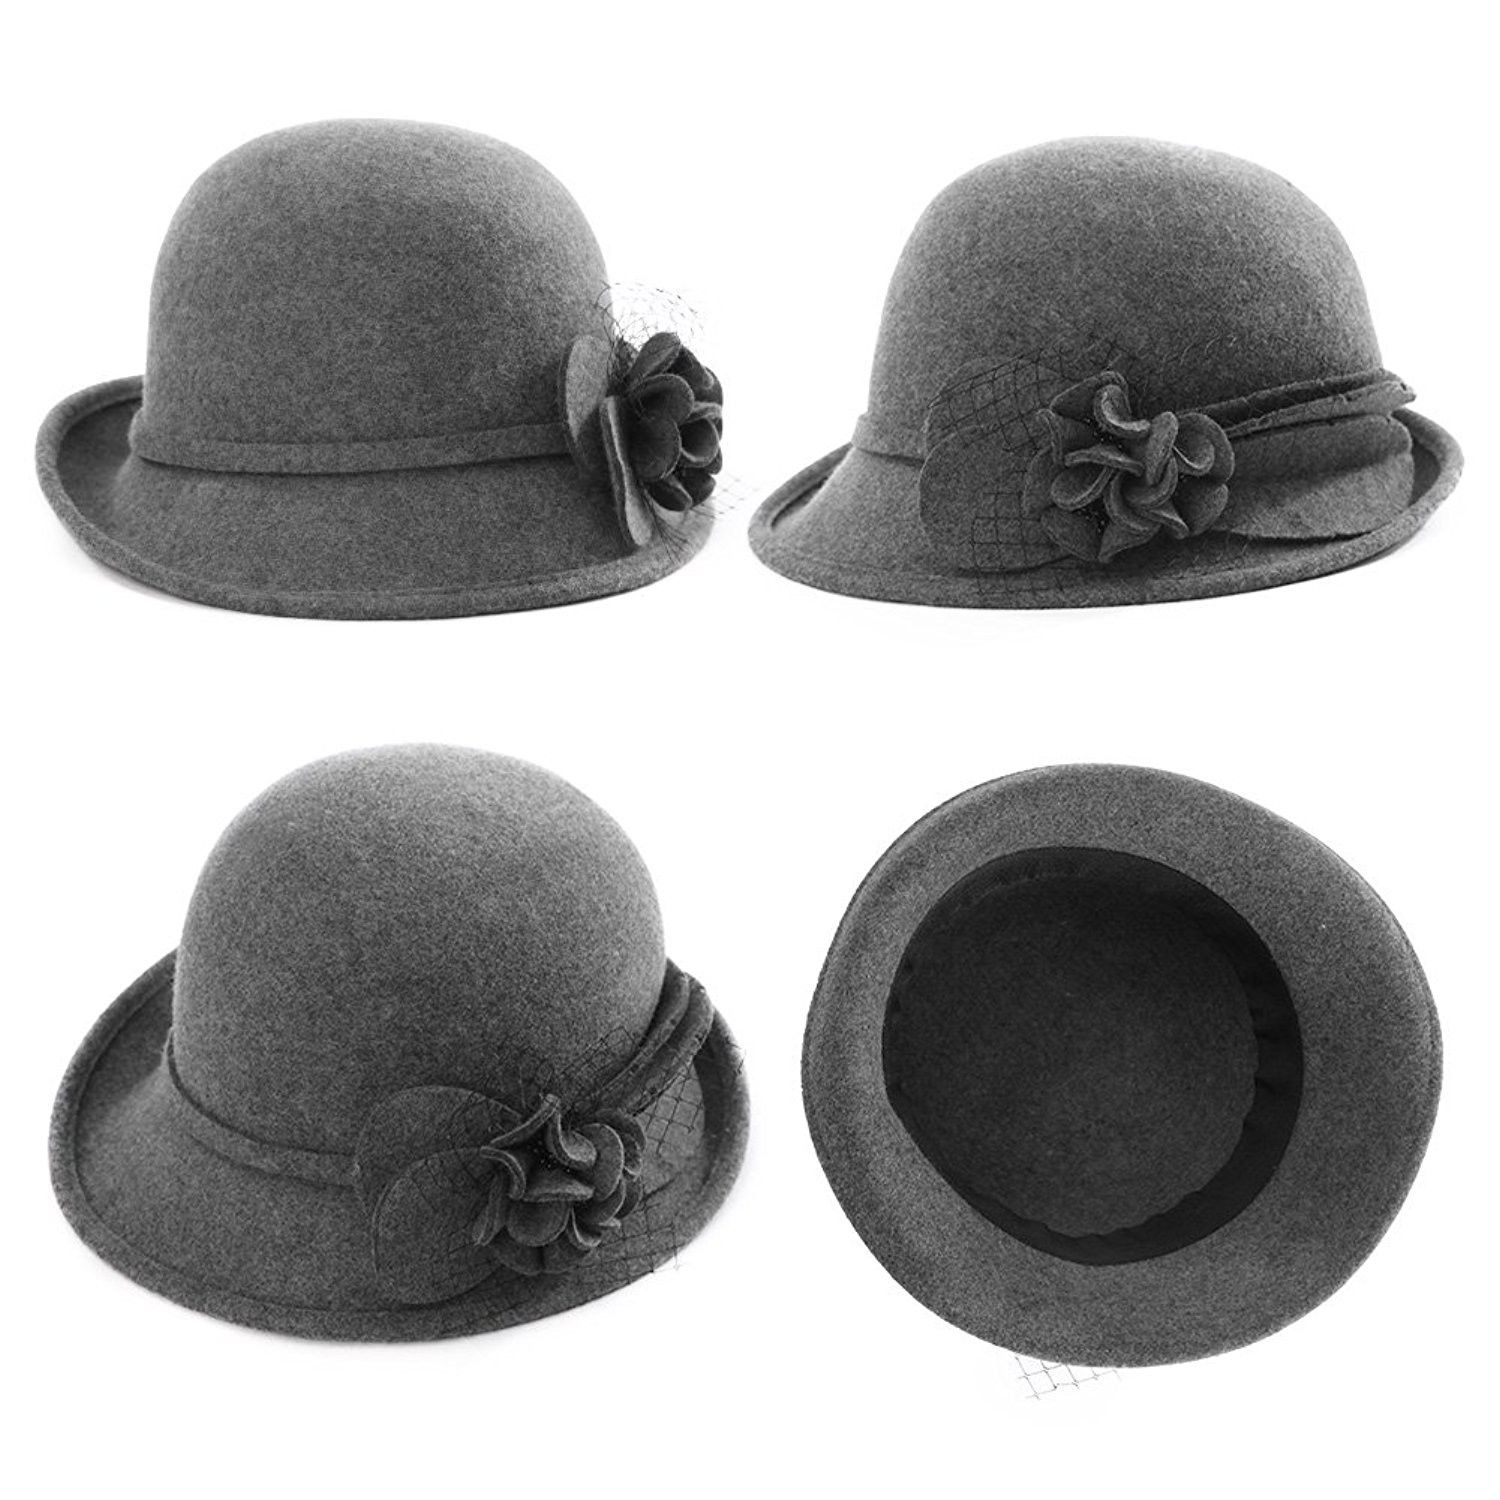 Womens 1920s Vintage Wool Felt Cloche Bucket Bowler Hat Winter Crushable 89073 Grey Cd187cocs7q Outfits With Hats Winter Hats For Women Hat Fashion